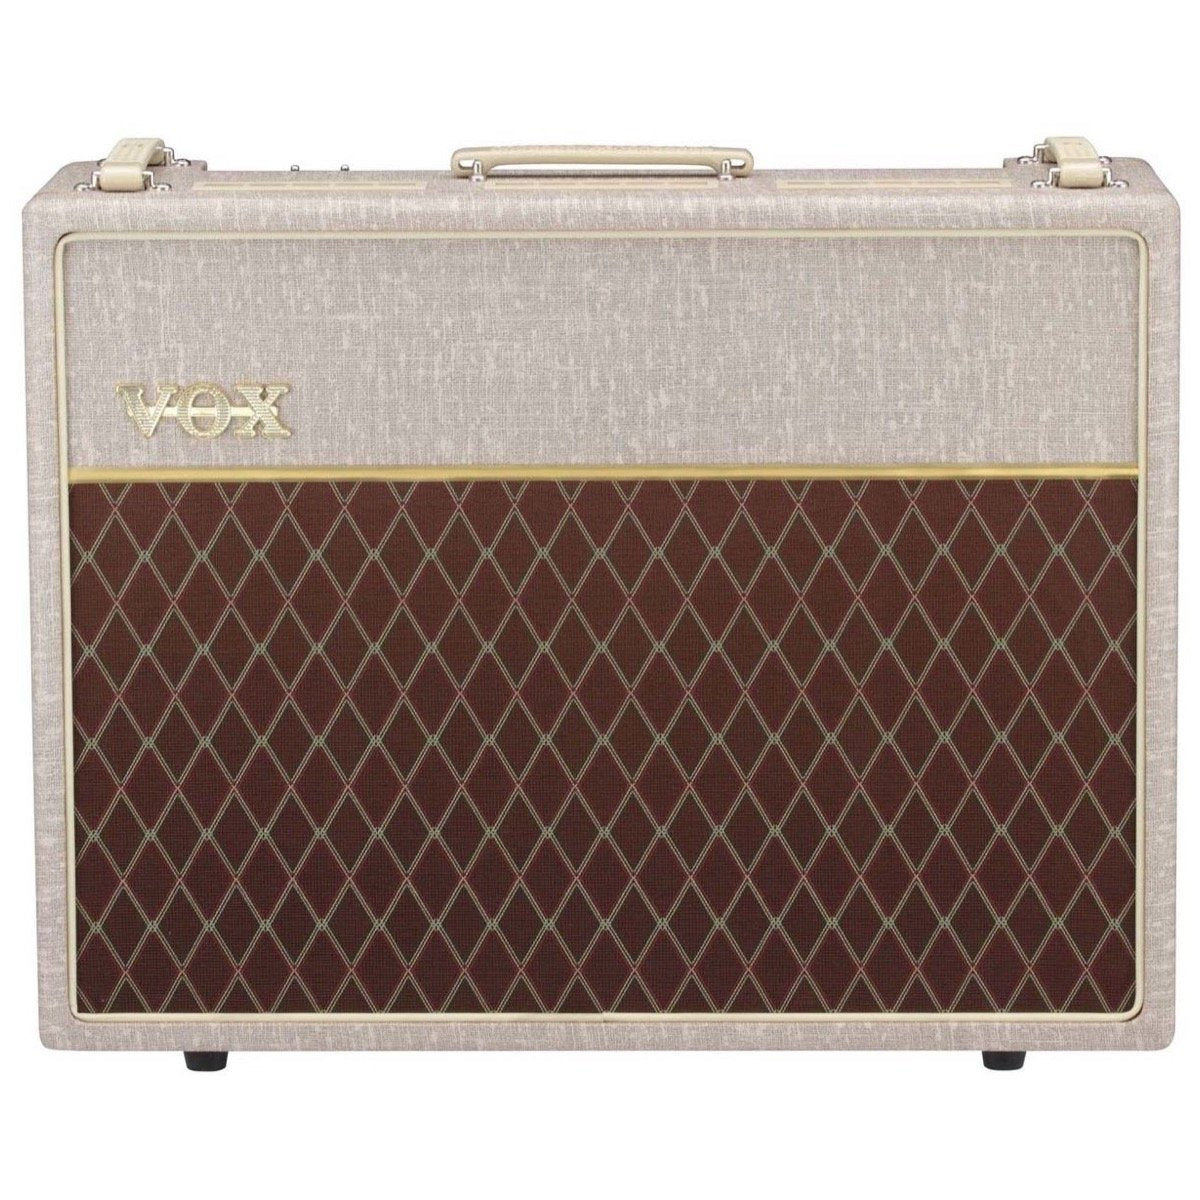 Vox AC30HW2 Hand-Wired Guitar Combo Amplifier (30 Watts, 2x12 Inch)